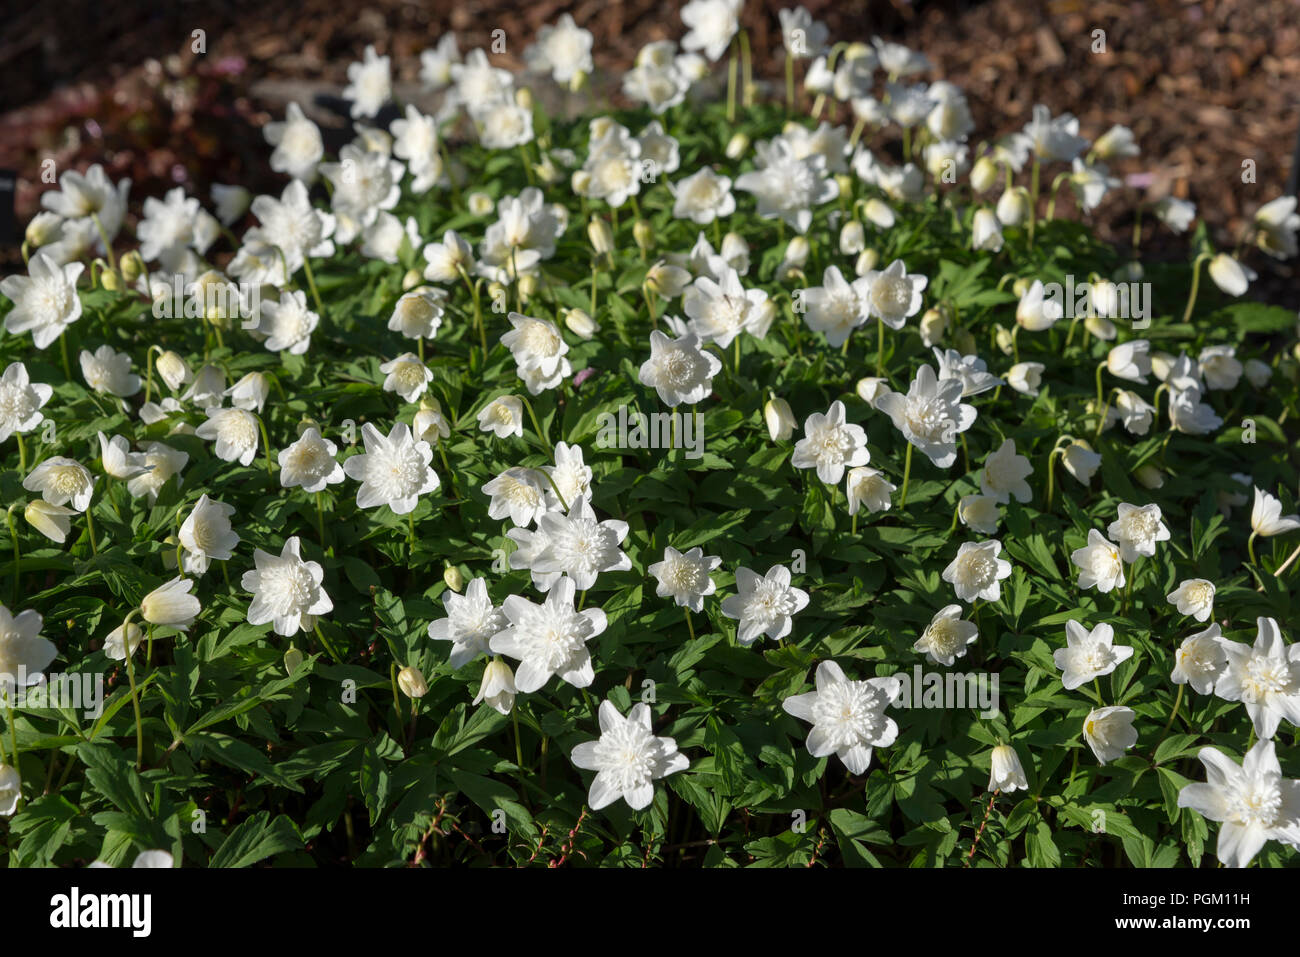 Anemone Nemorosa 'Vestal'. A pure white spring flowering form of wood Anemone with dainty double flowers. Stock Photo